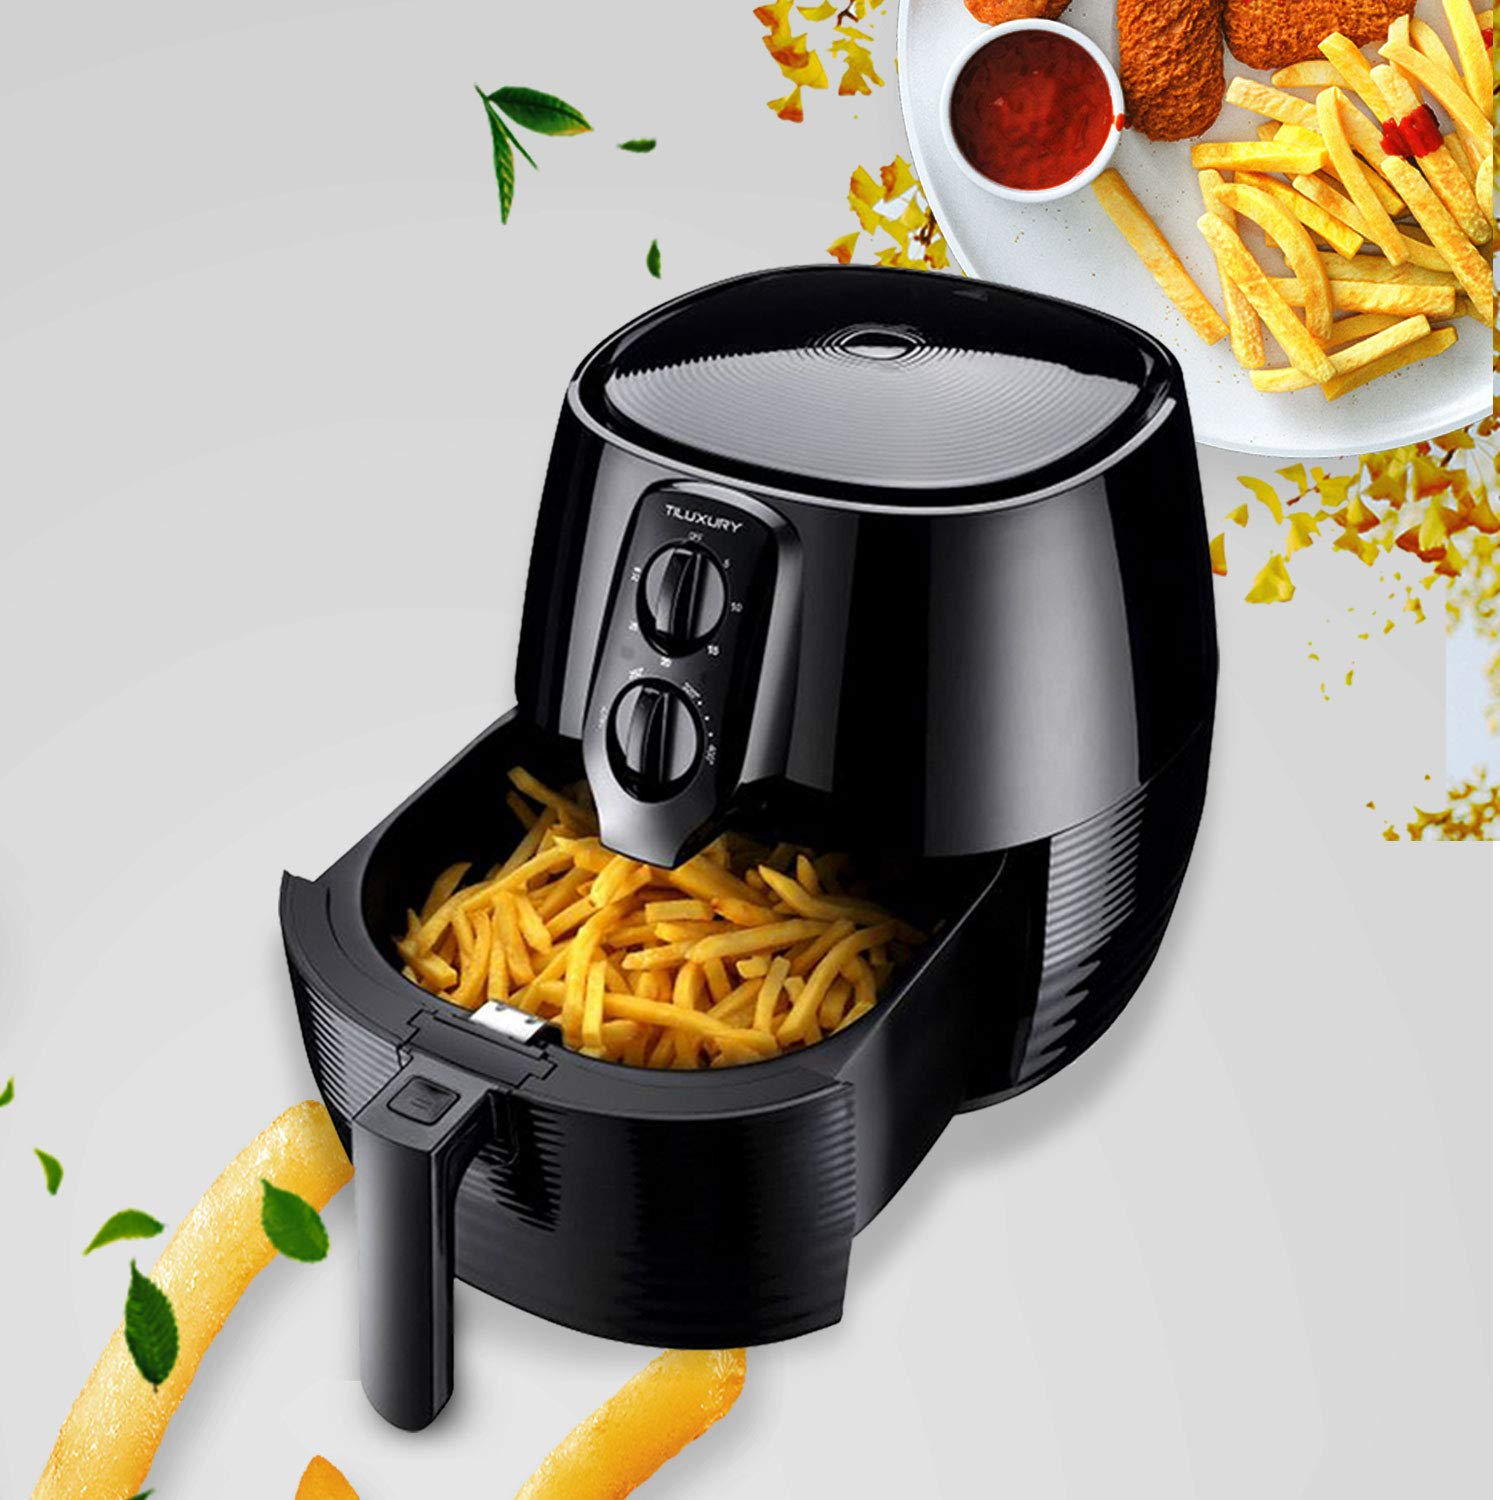 XL 5.8QT Oil Free Air Fryer, Temperature Control,For Healthy Fried Food, with 6-PC Accessory Set + 50 Recipes